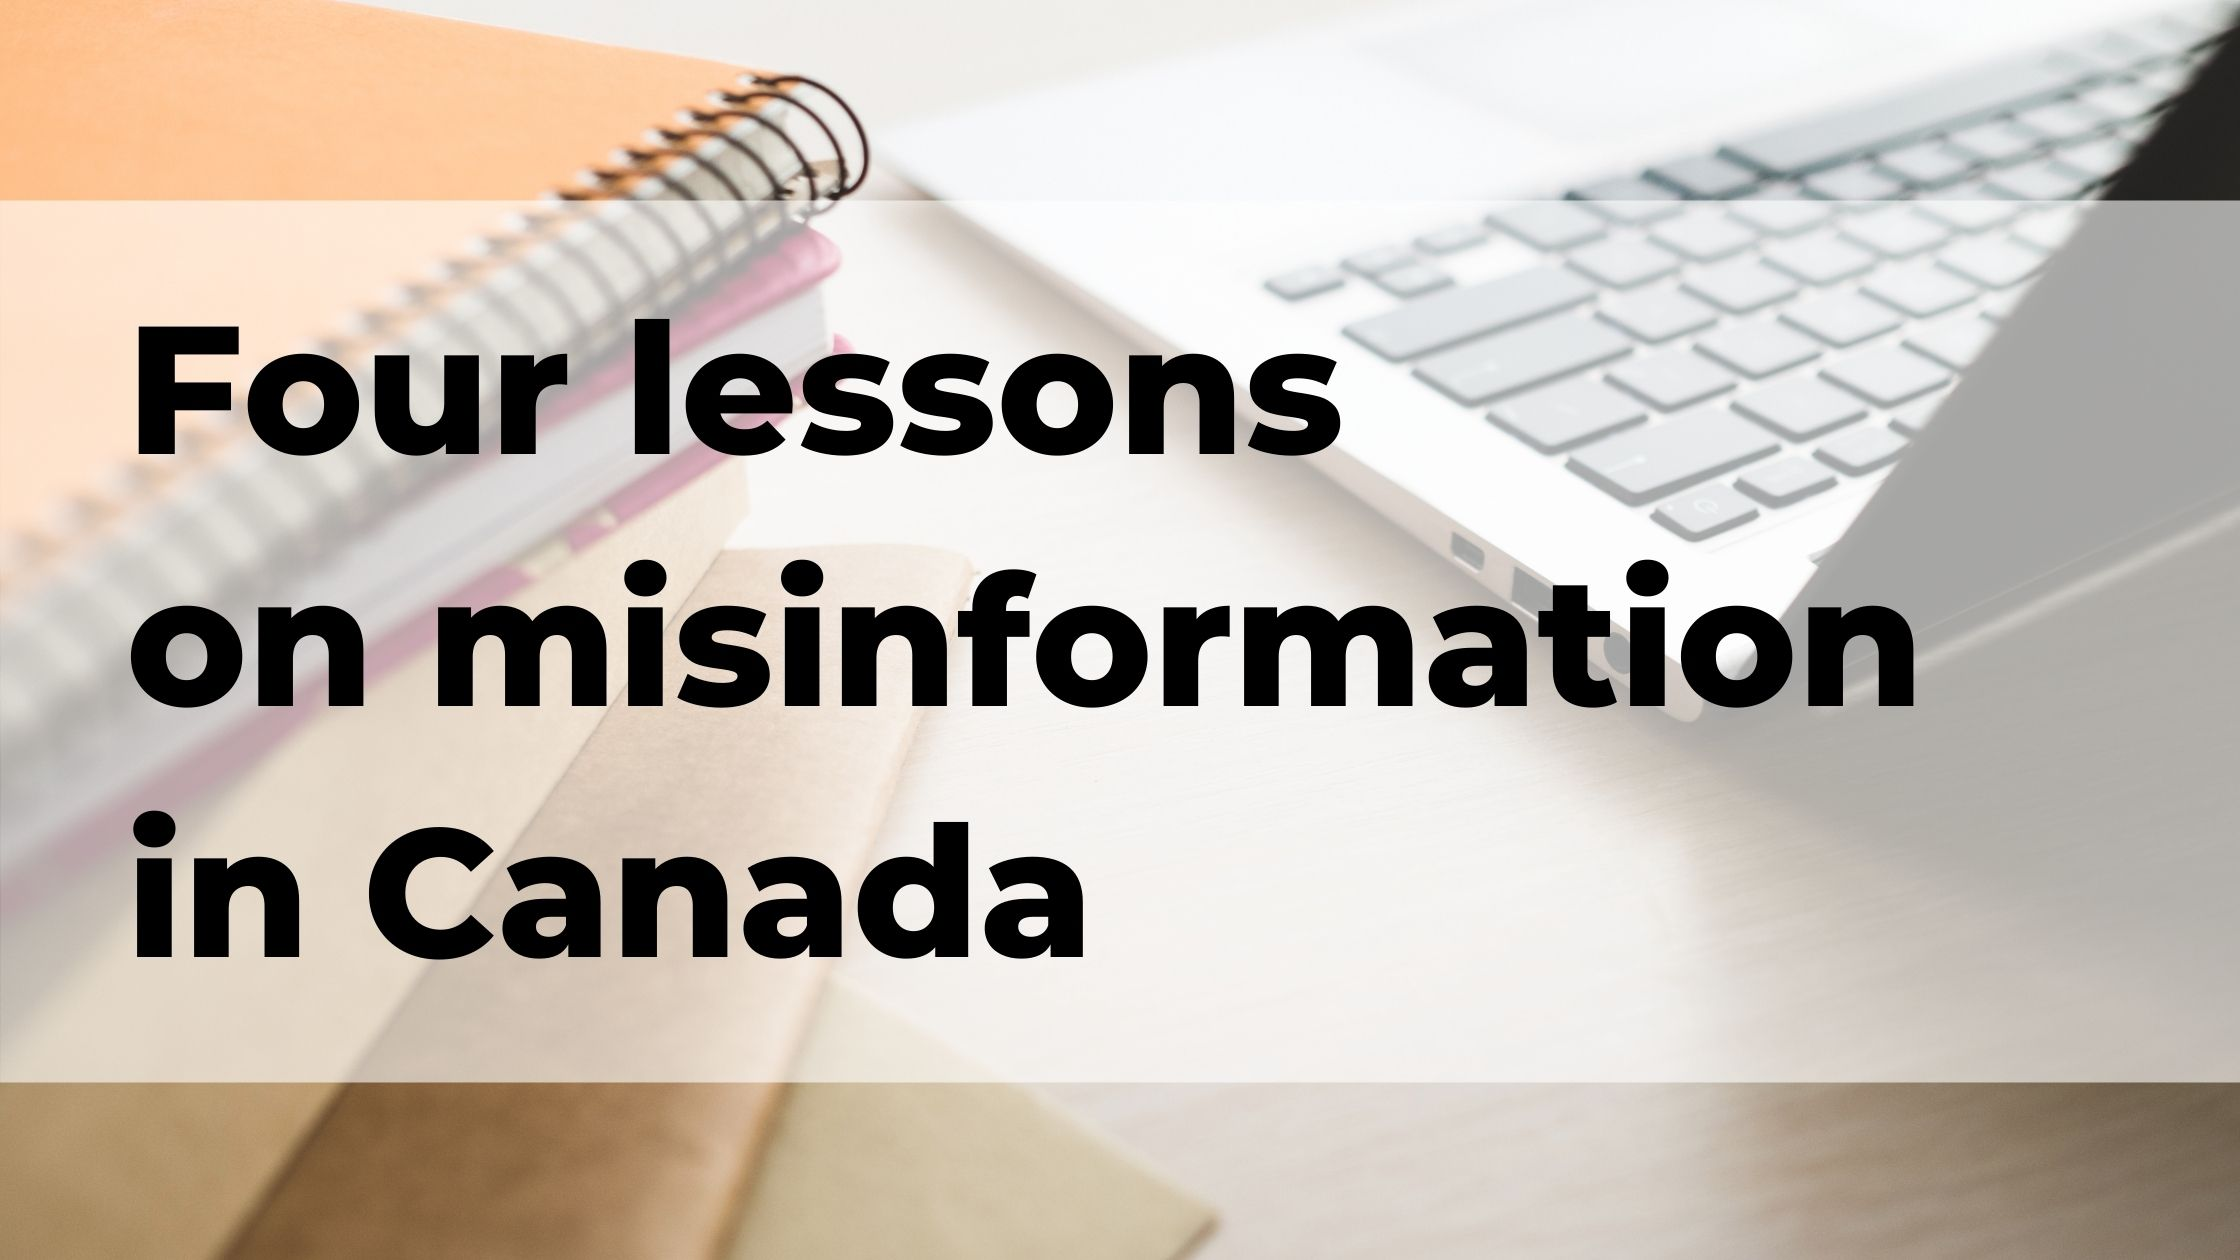 Four lessons on misinformation in Canada